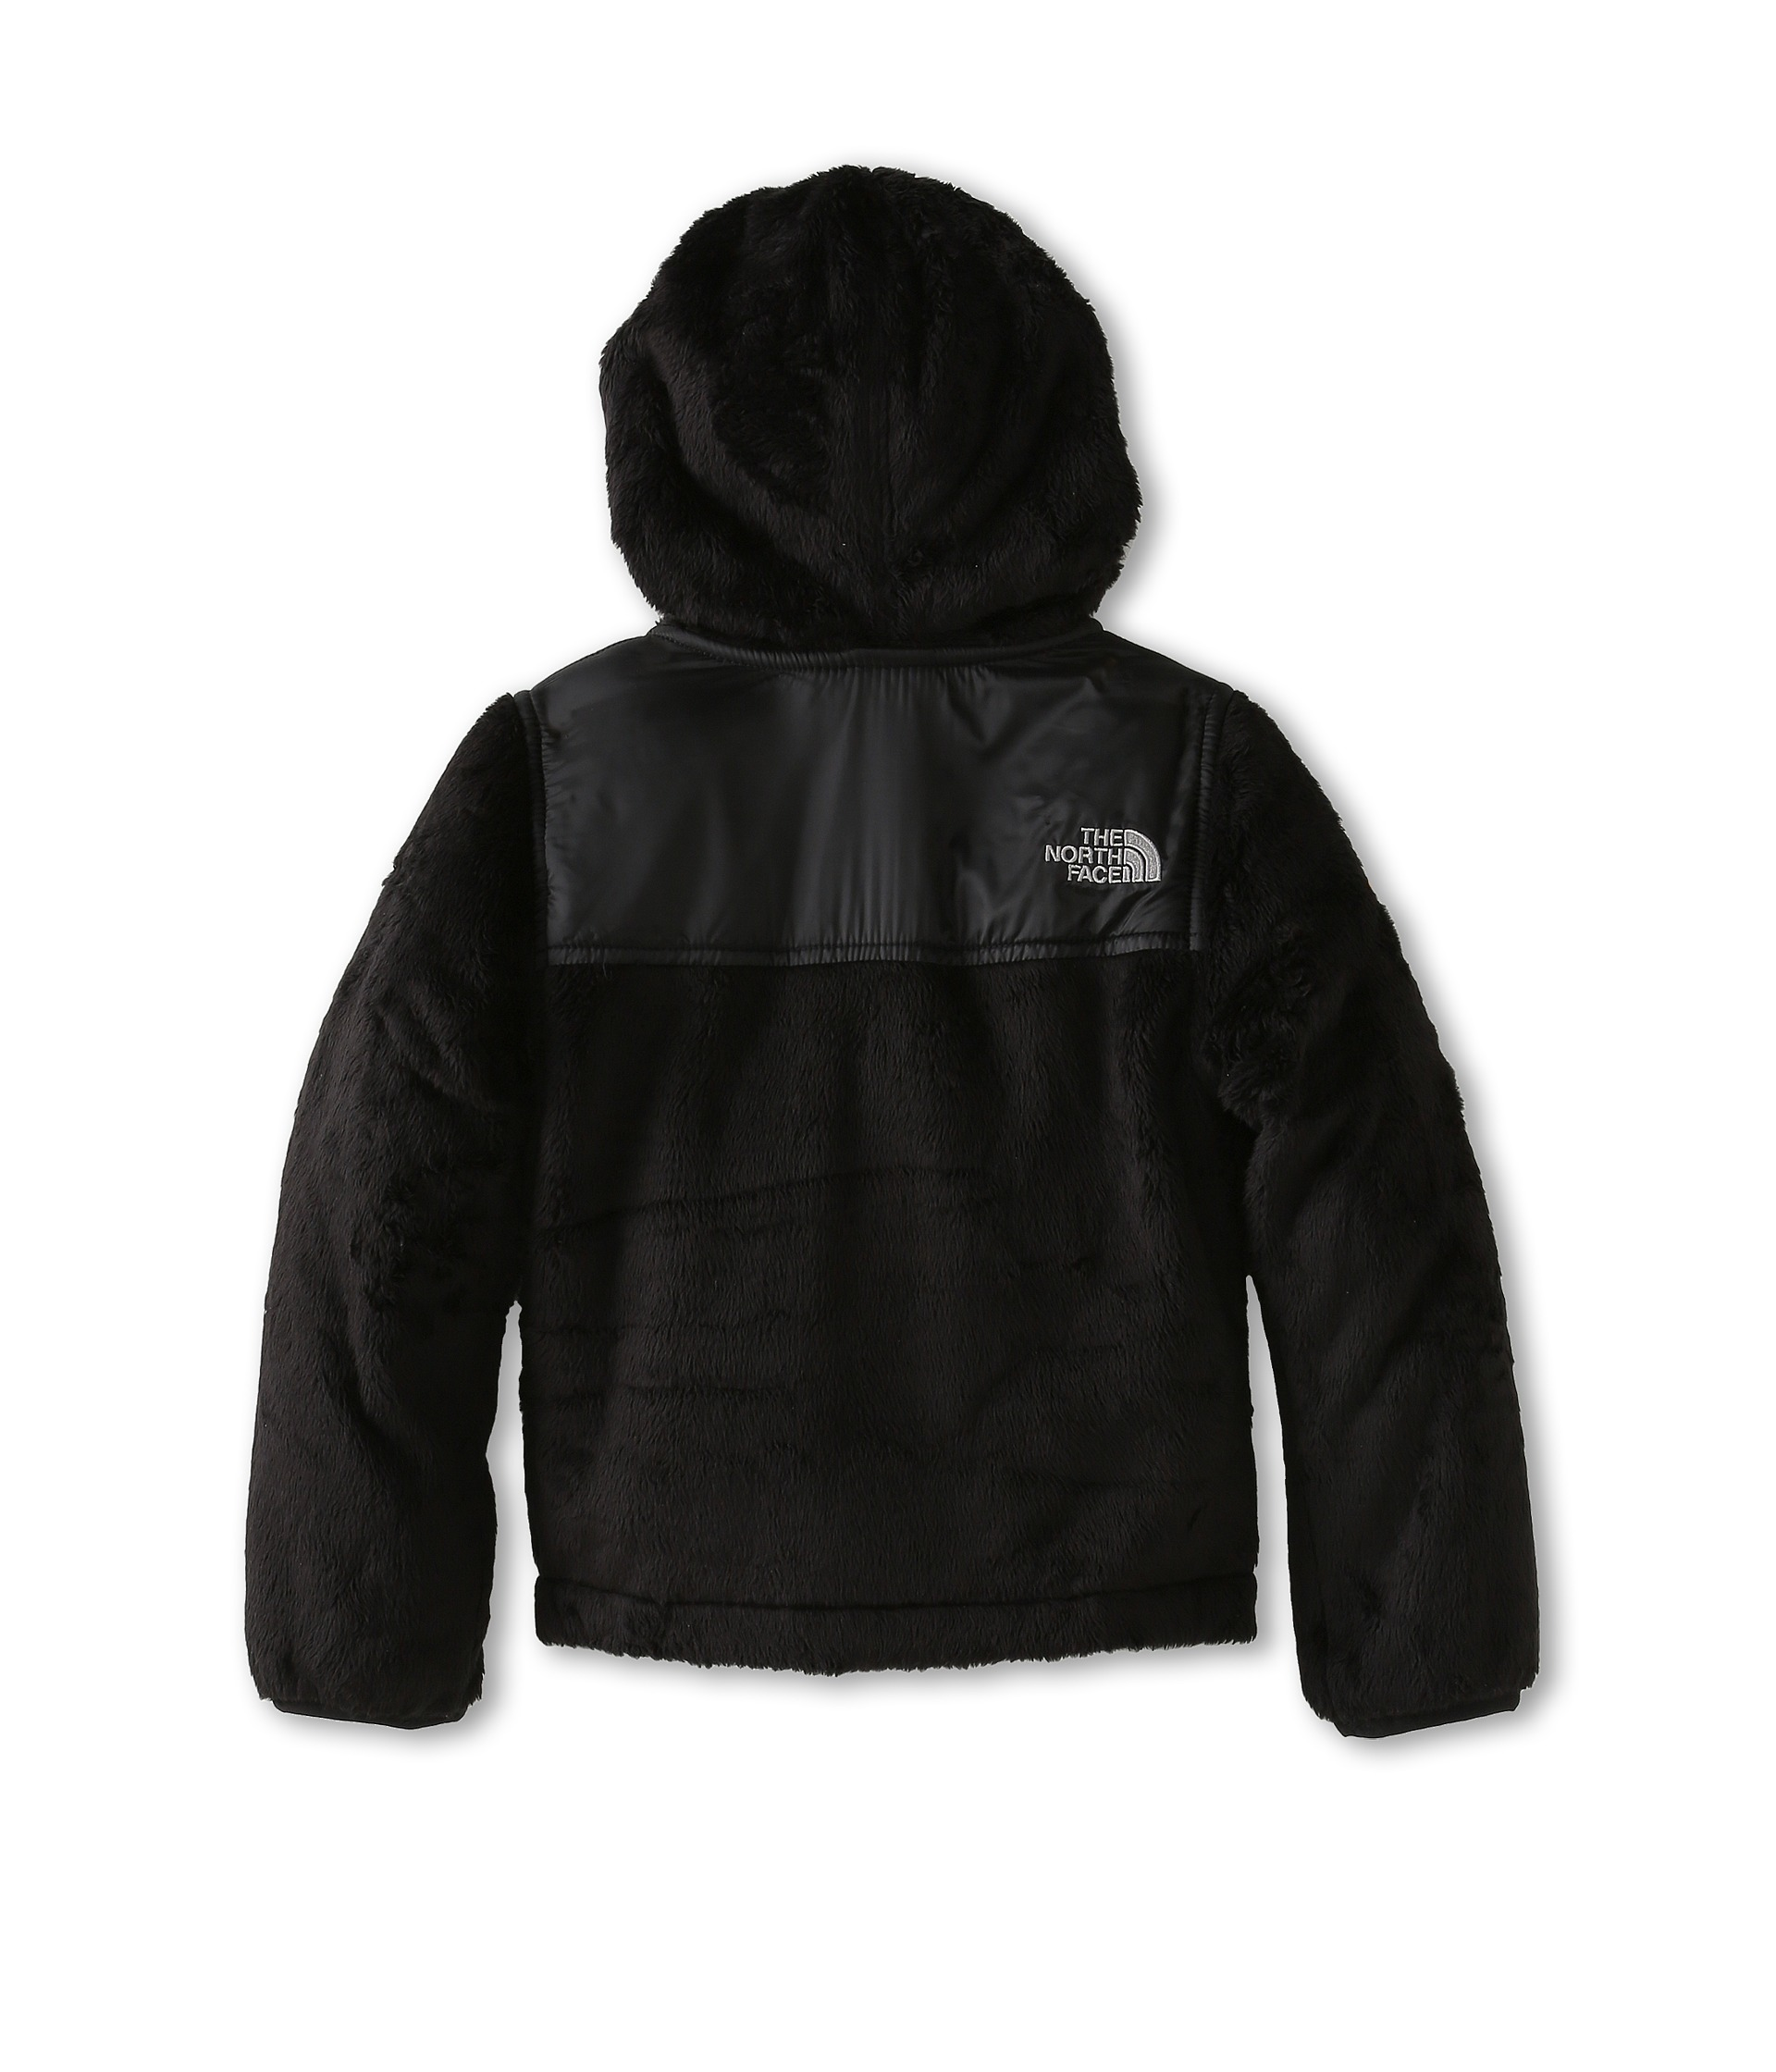 North face girls oso hoodie sale